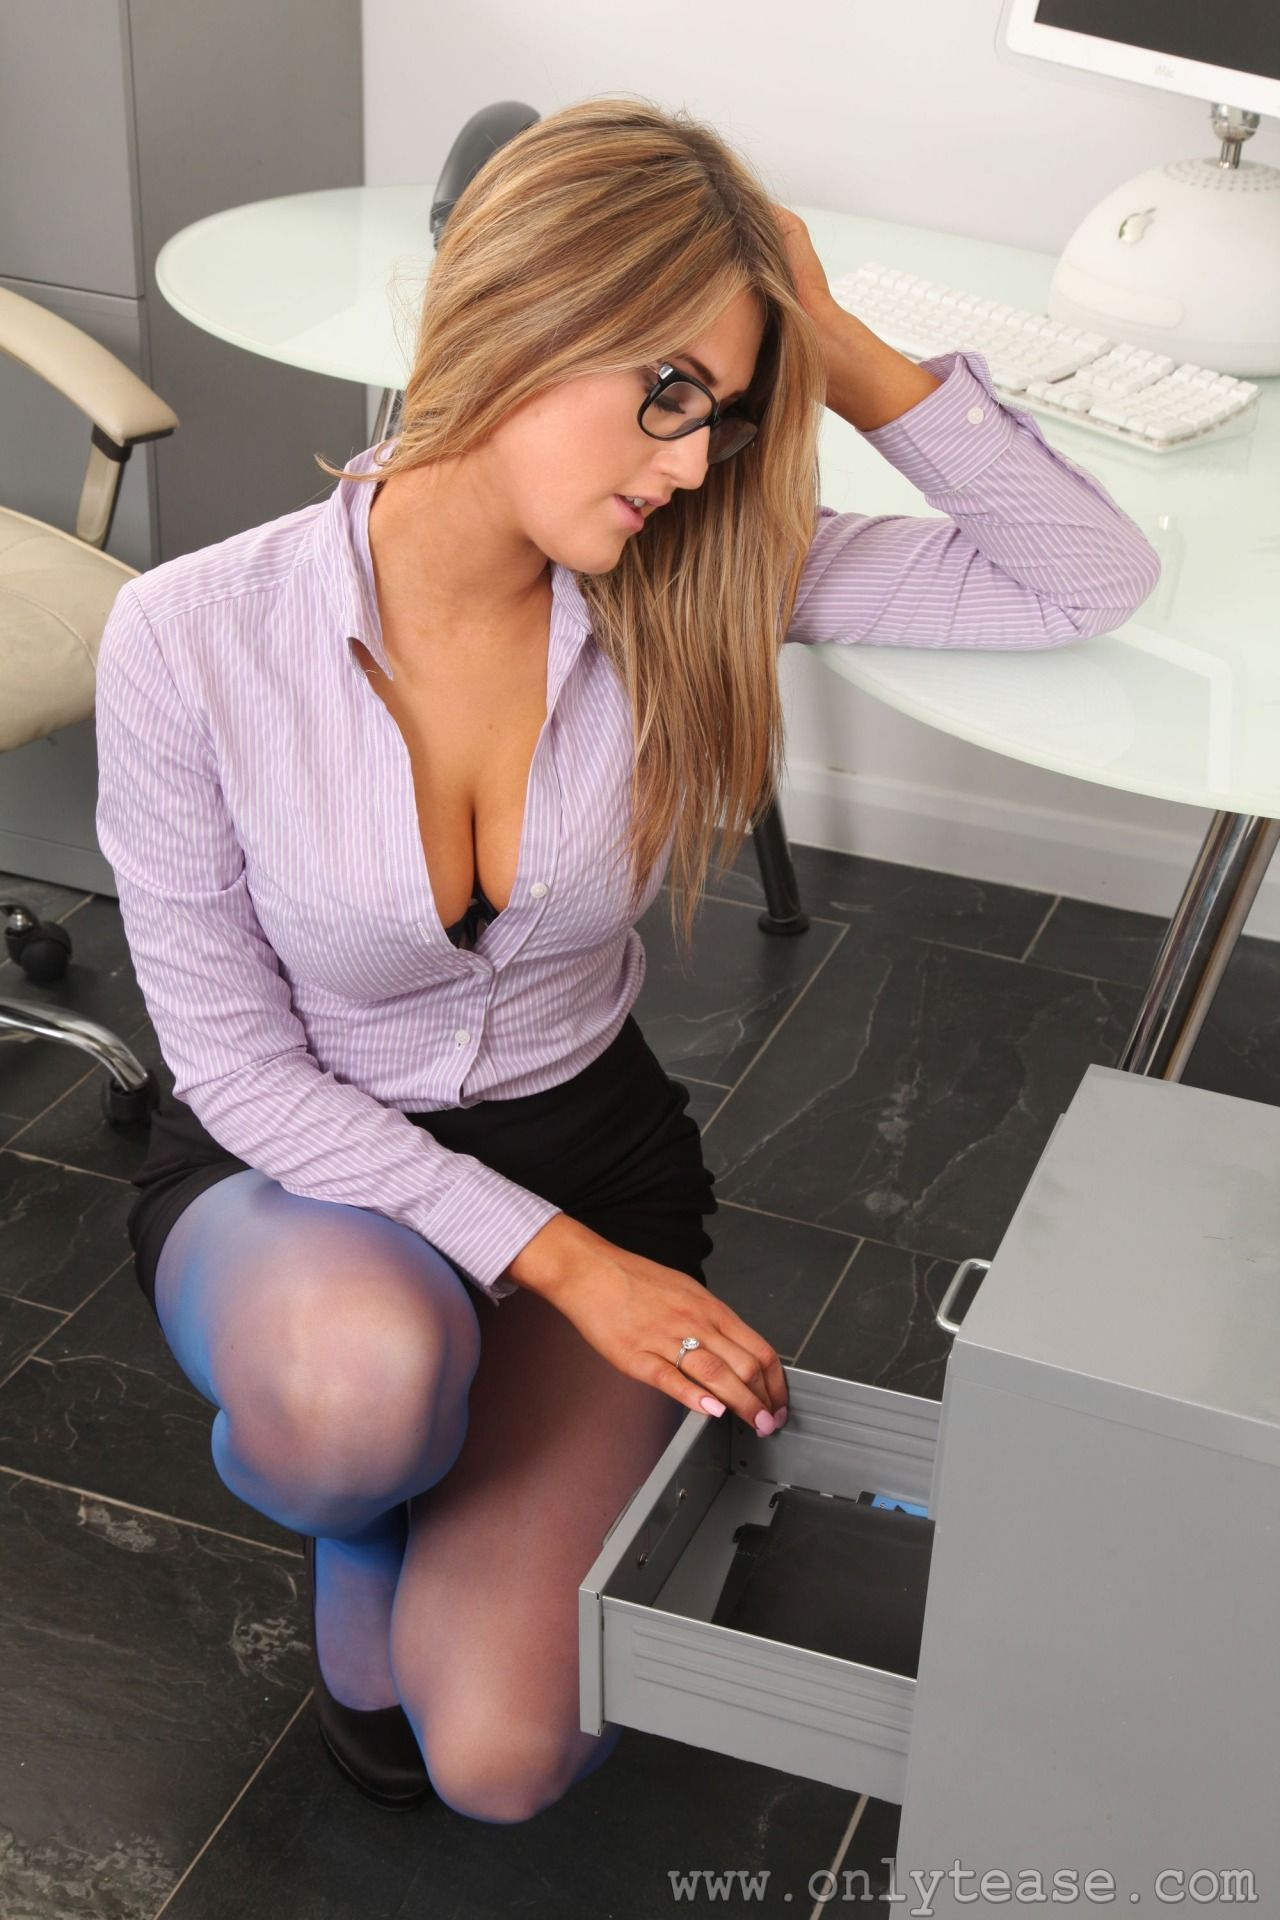 YOLANDA: Sexy girls in the office